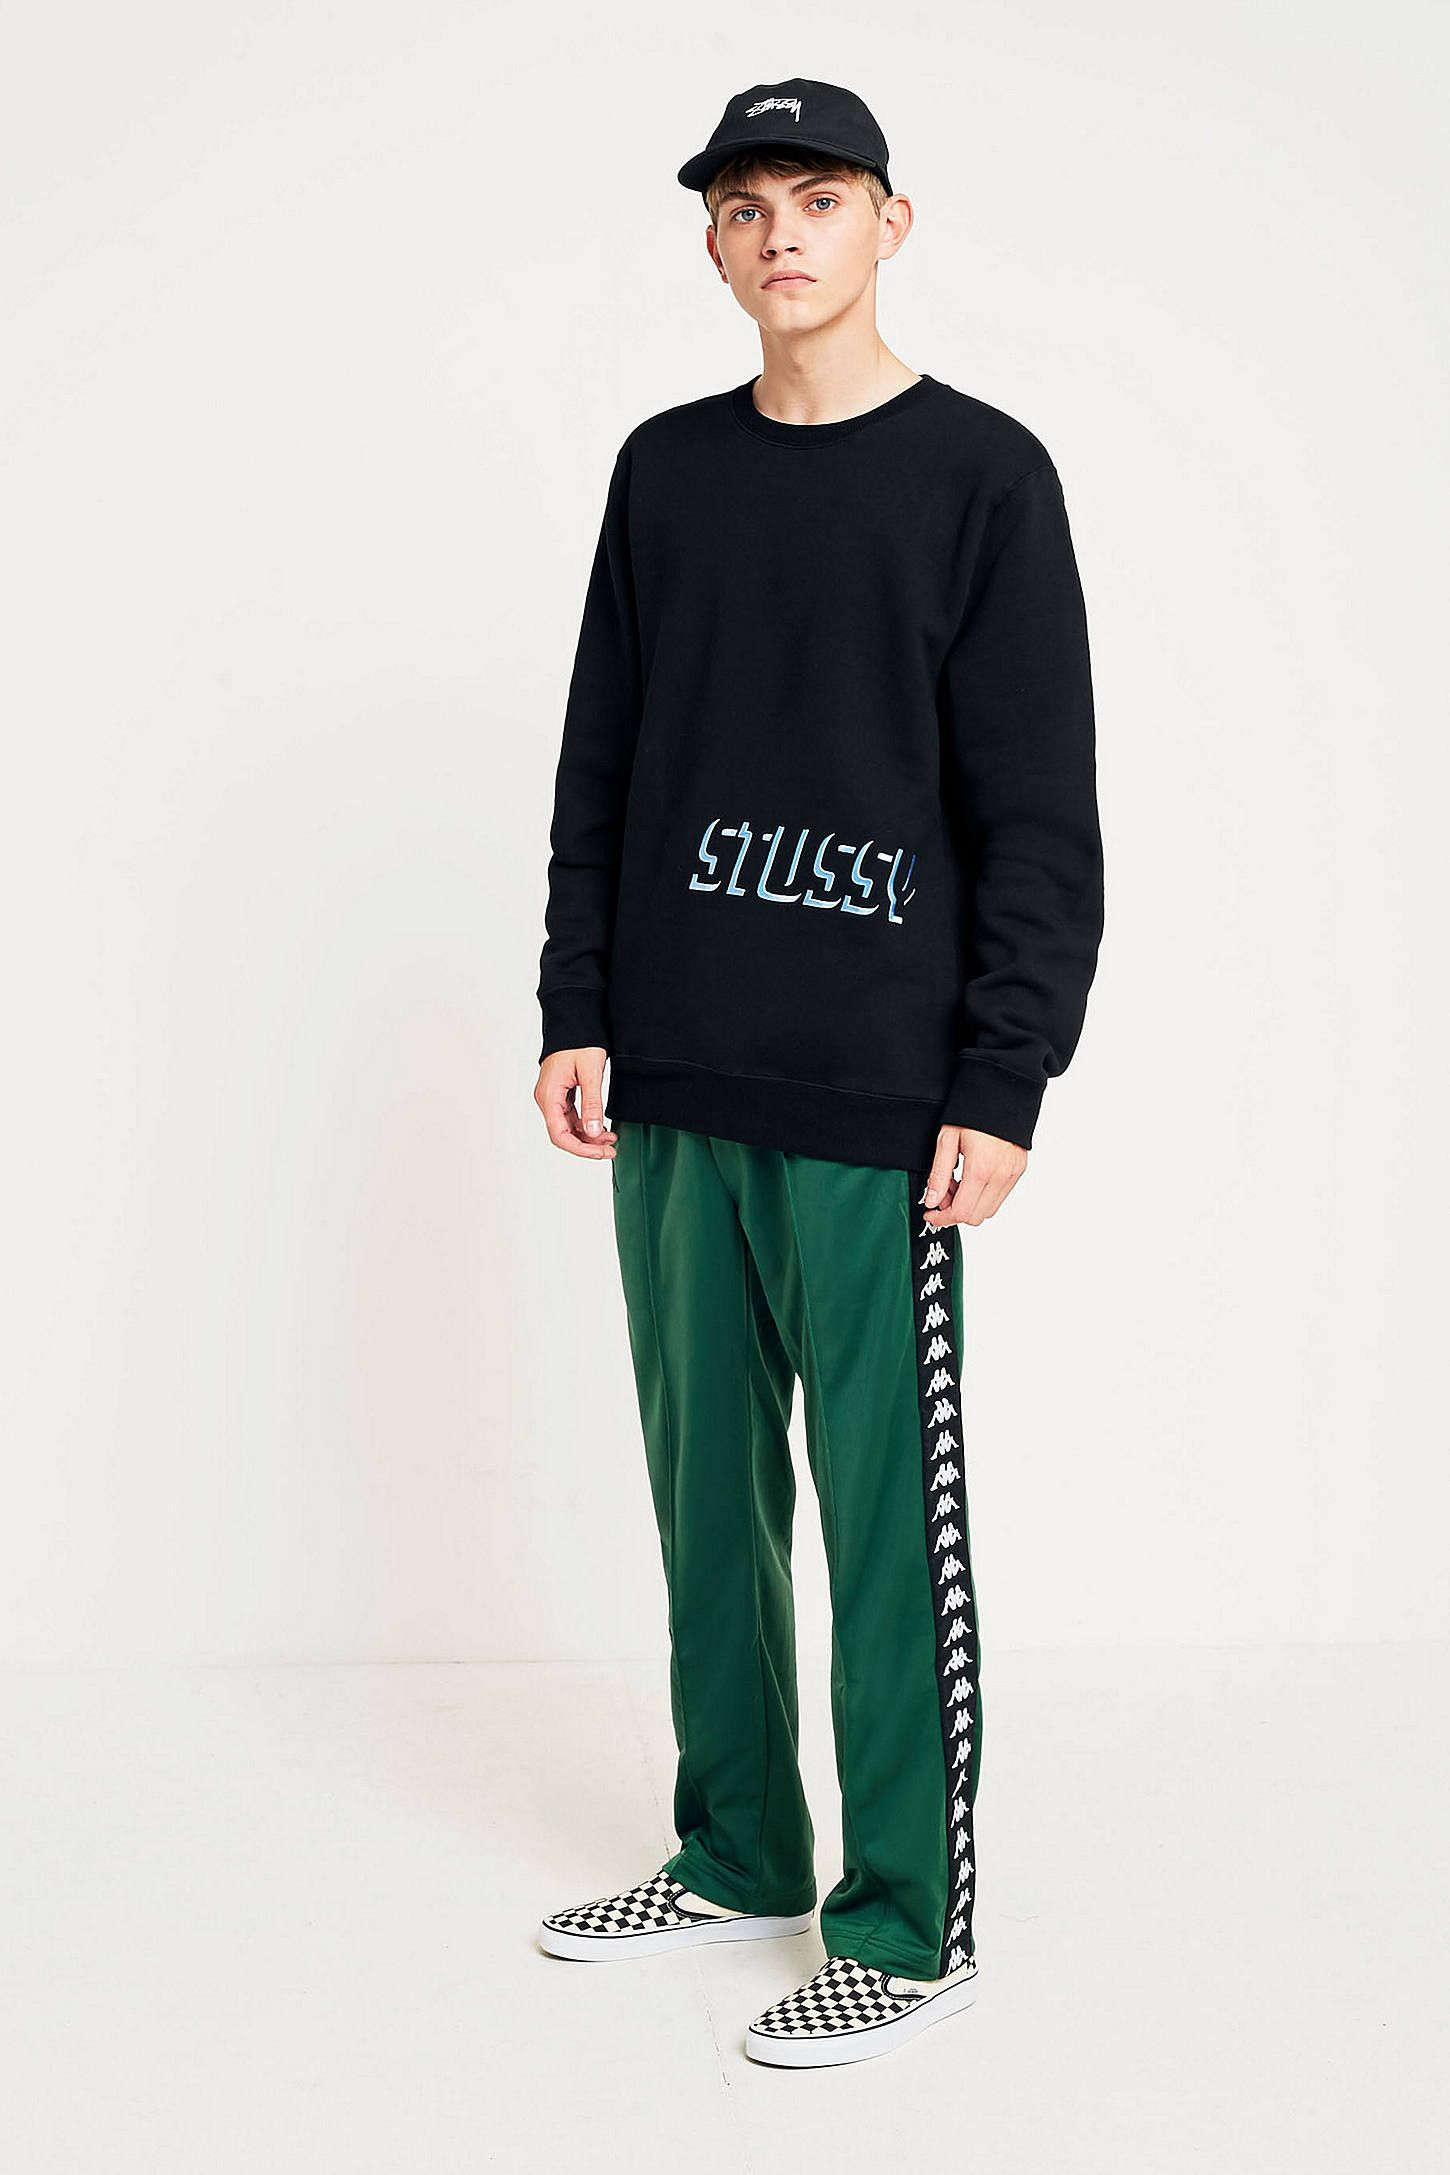 7013c85d628c Shop Kappa Astoria Green Logo Track Pants at Urban Outfitters today. We  carry all the latest styles